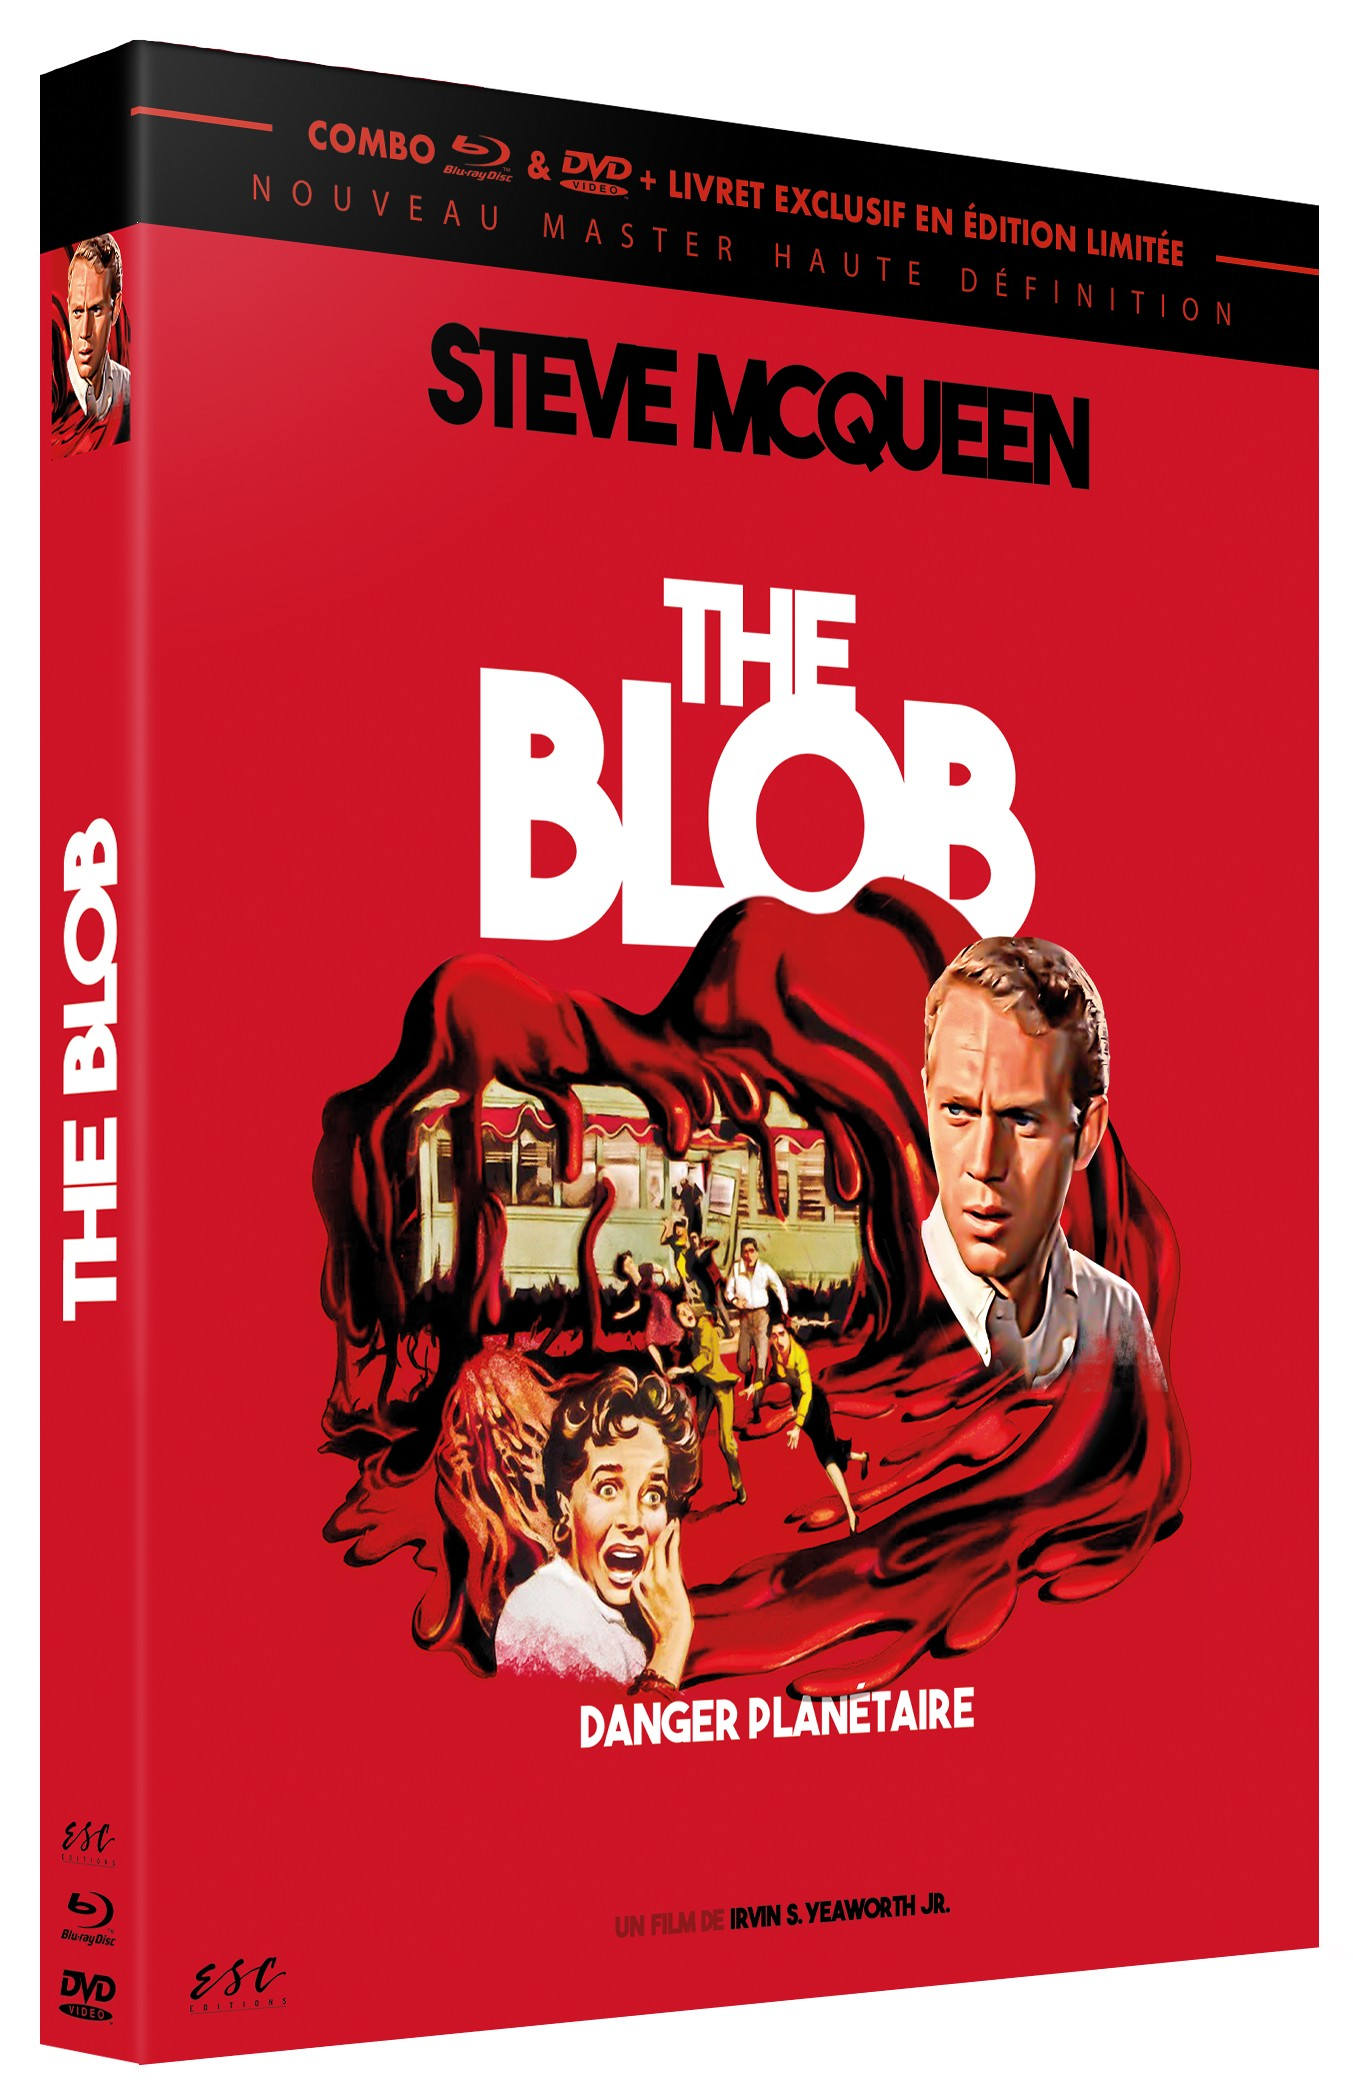 THE BLOB, DANGER PLANETAIRE